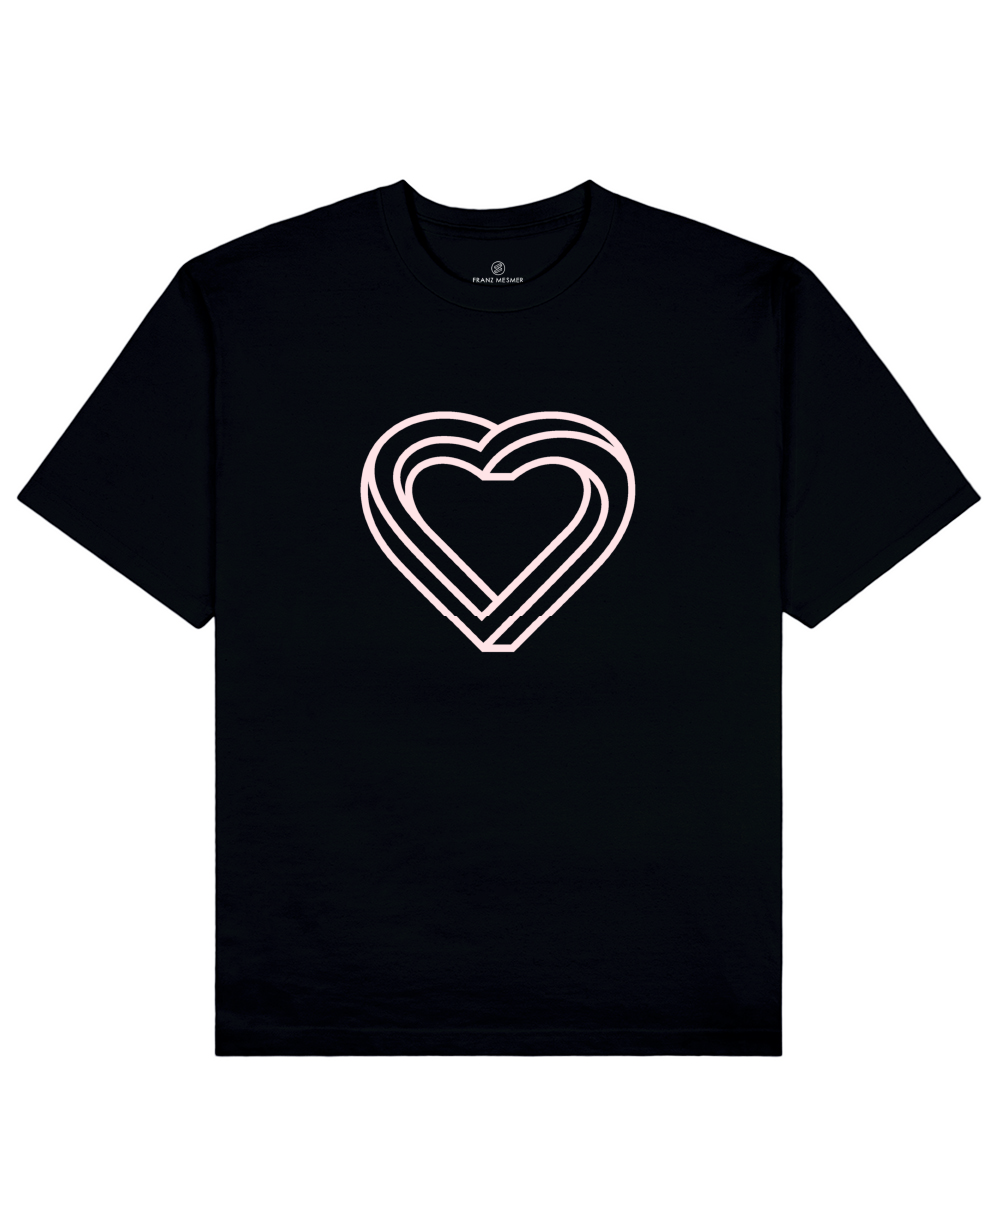 Impossible Heart Print T-Shirt in Black - T-Shirts - Franz Mesmer - BRANMA